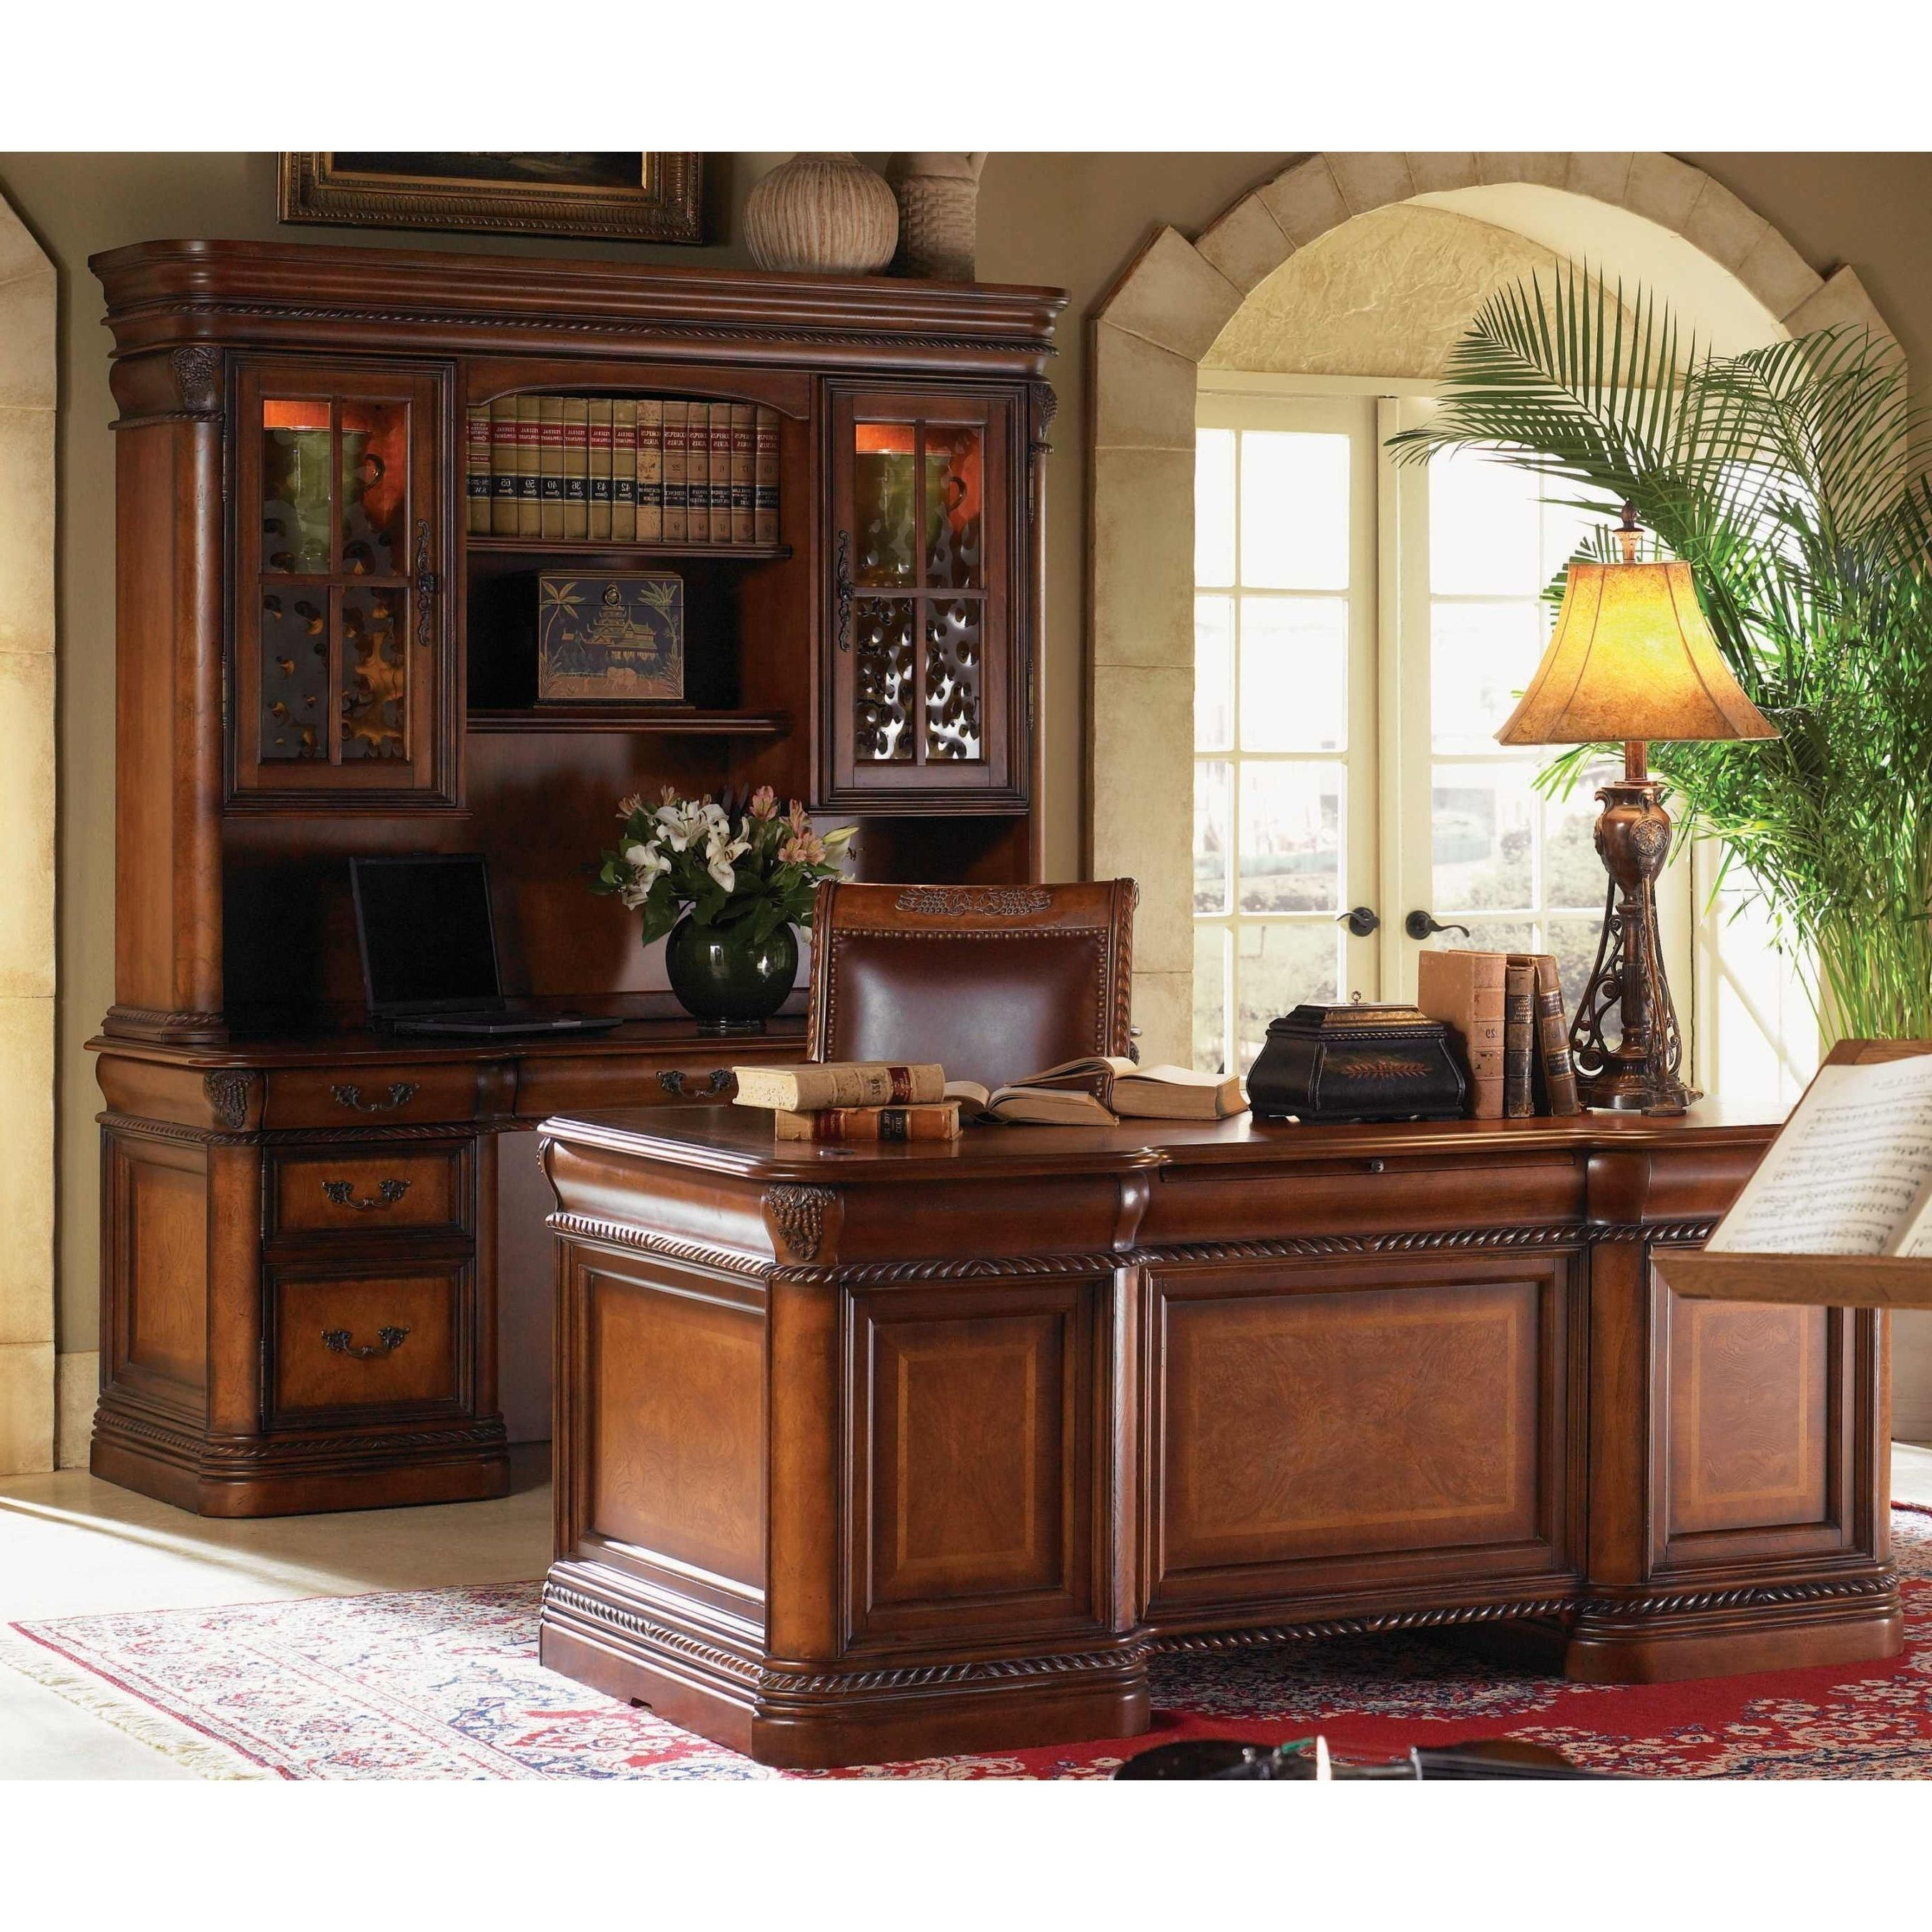 21 Really Impressive Home Office Designs In Traditional Style That Wows Traditional Home Offices Traditional Home Office Traditional Home Office Furniture